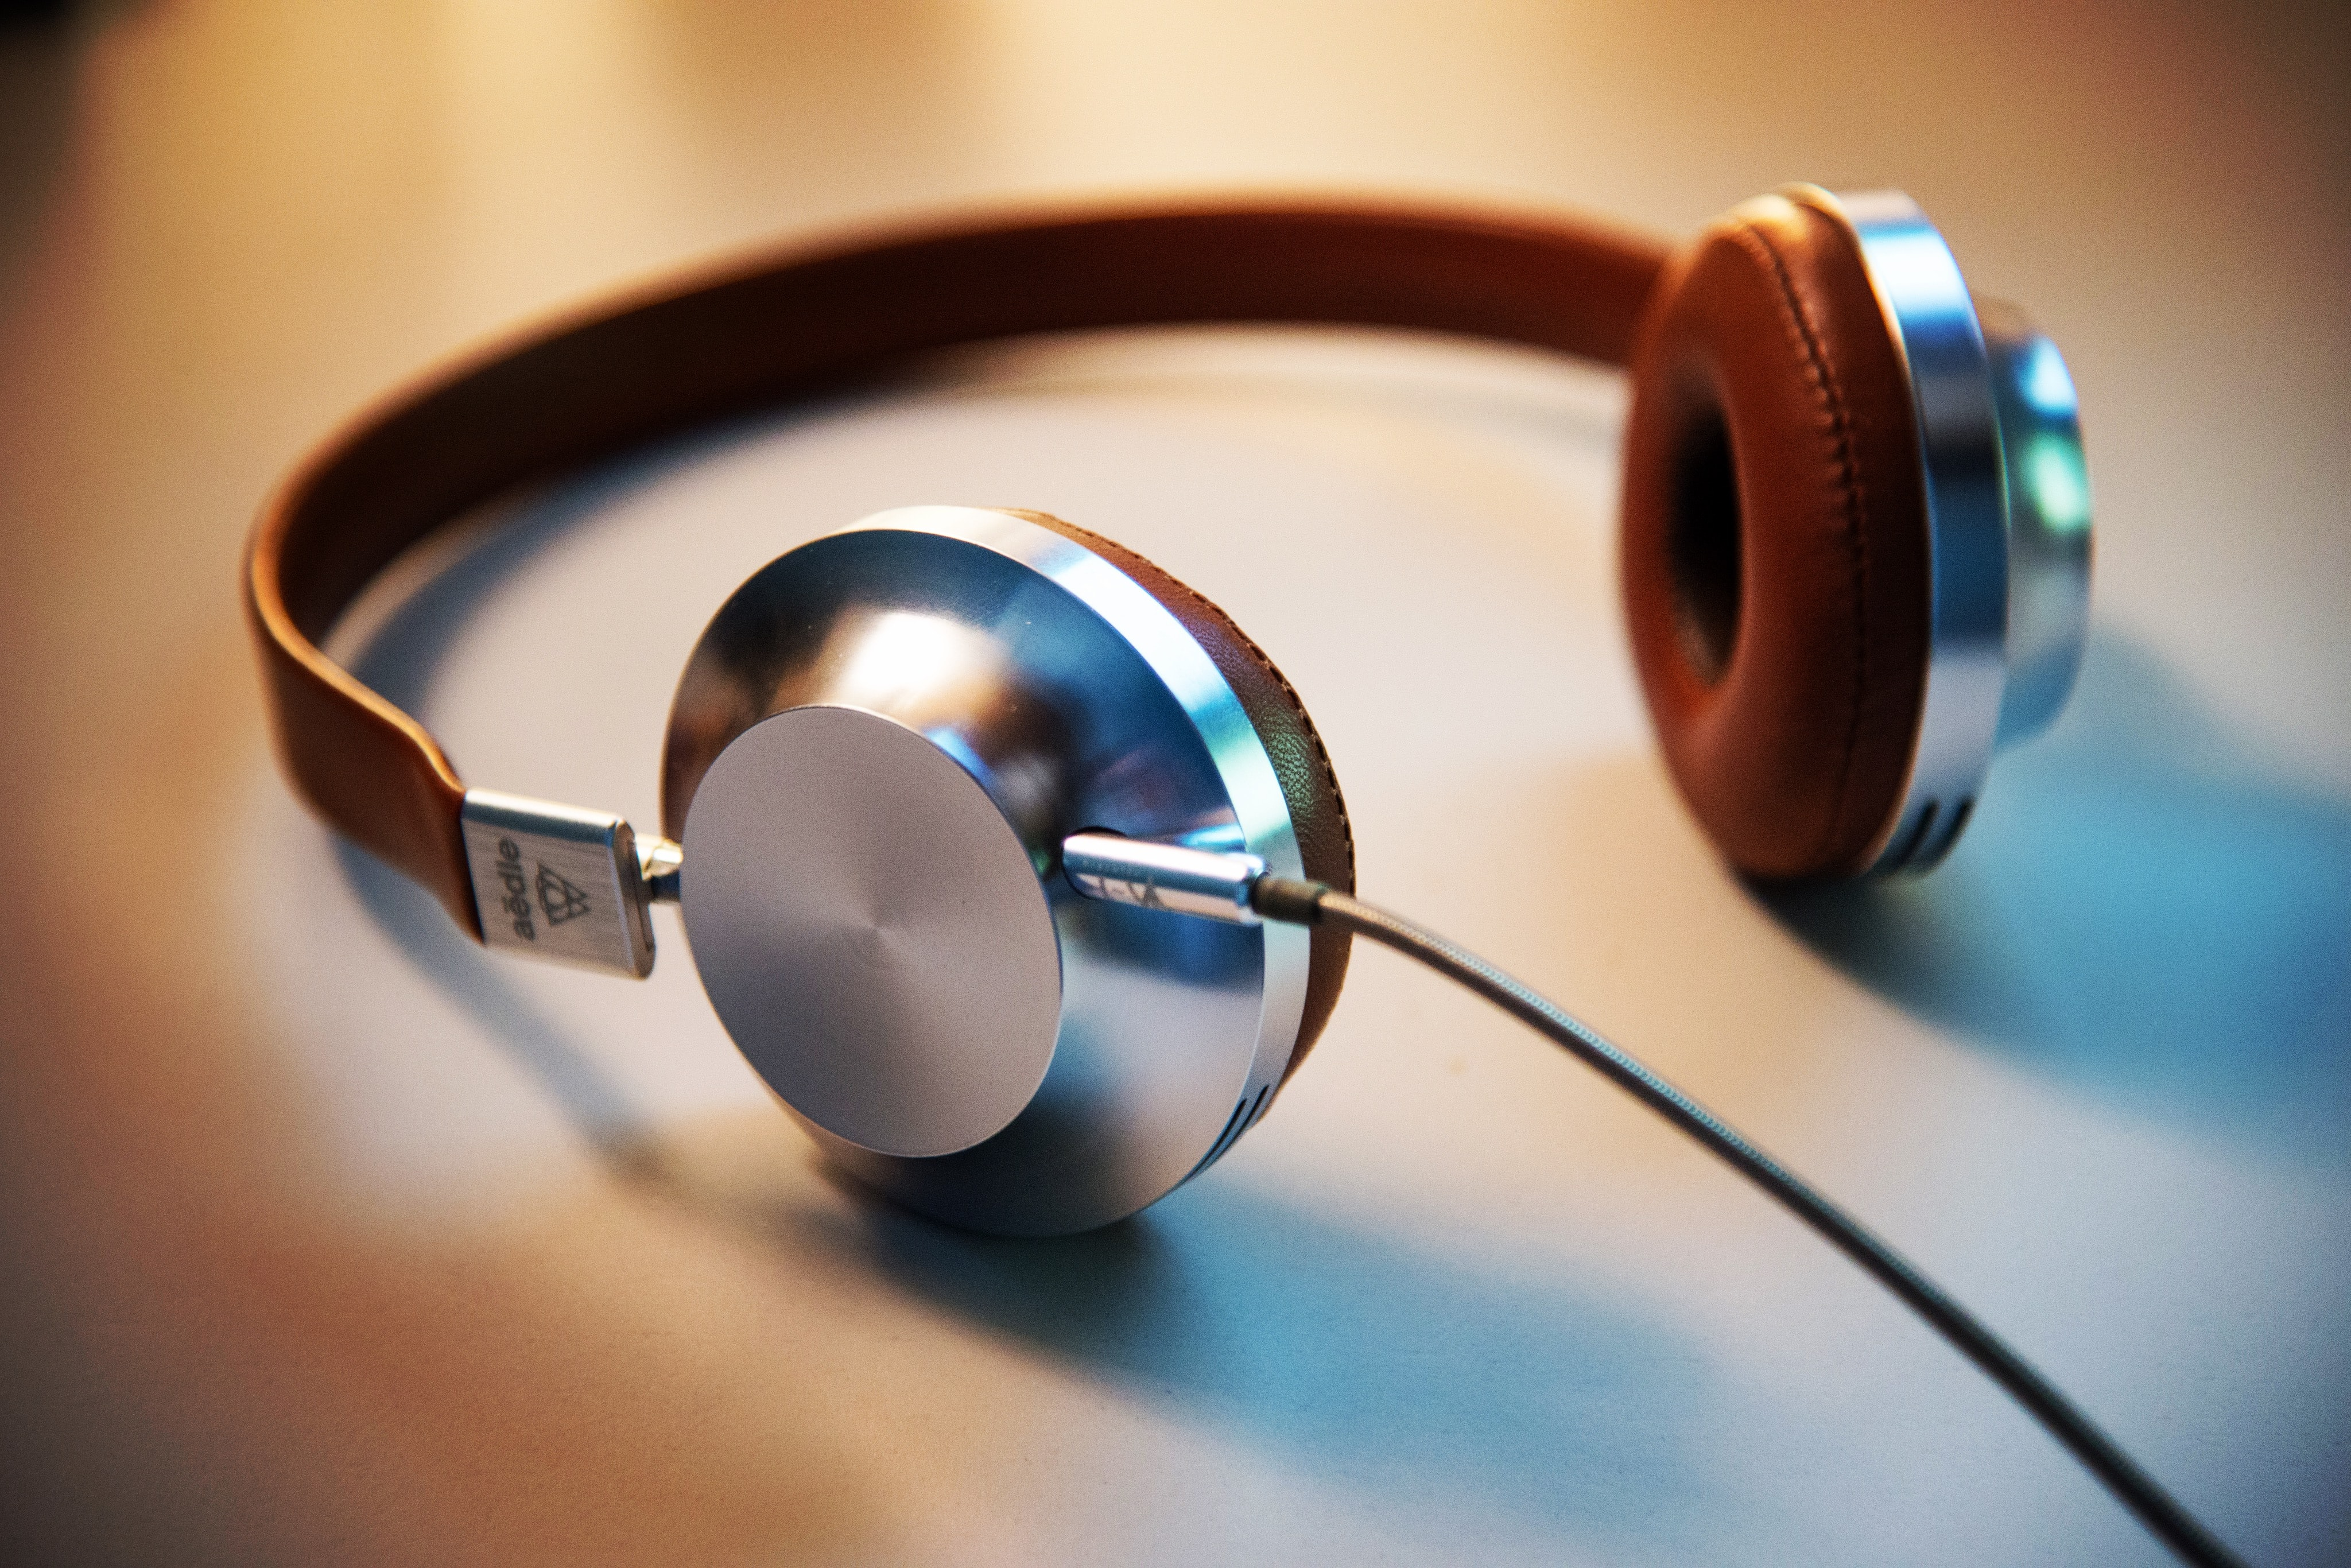 100 Headphone Pictures Download Free Images On Unsplash